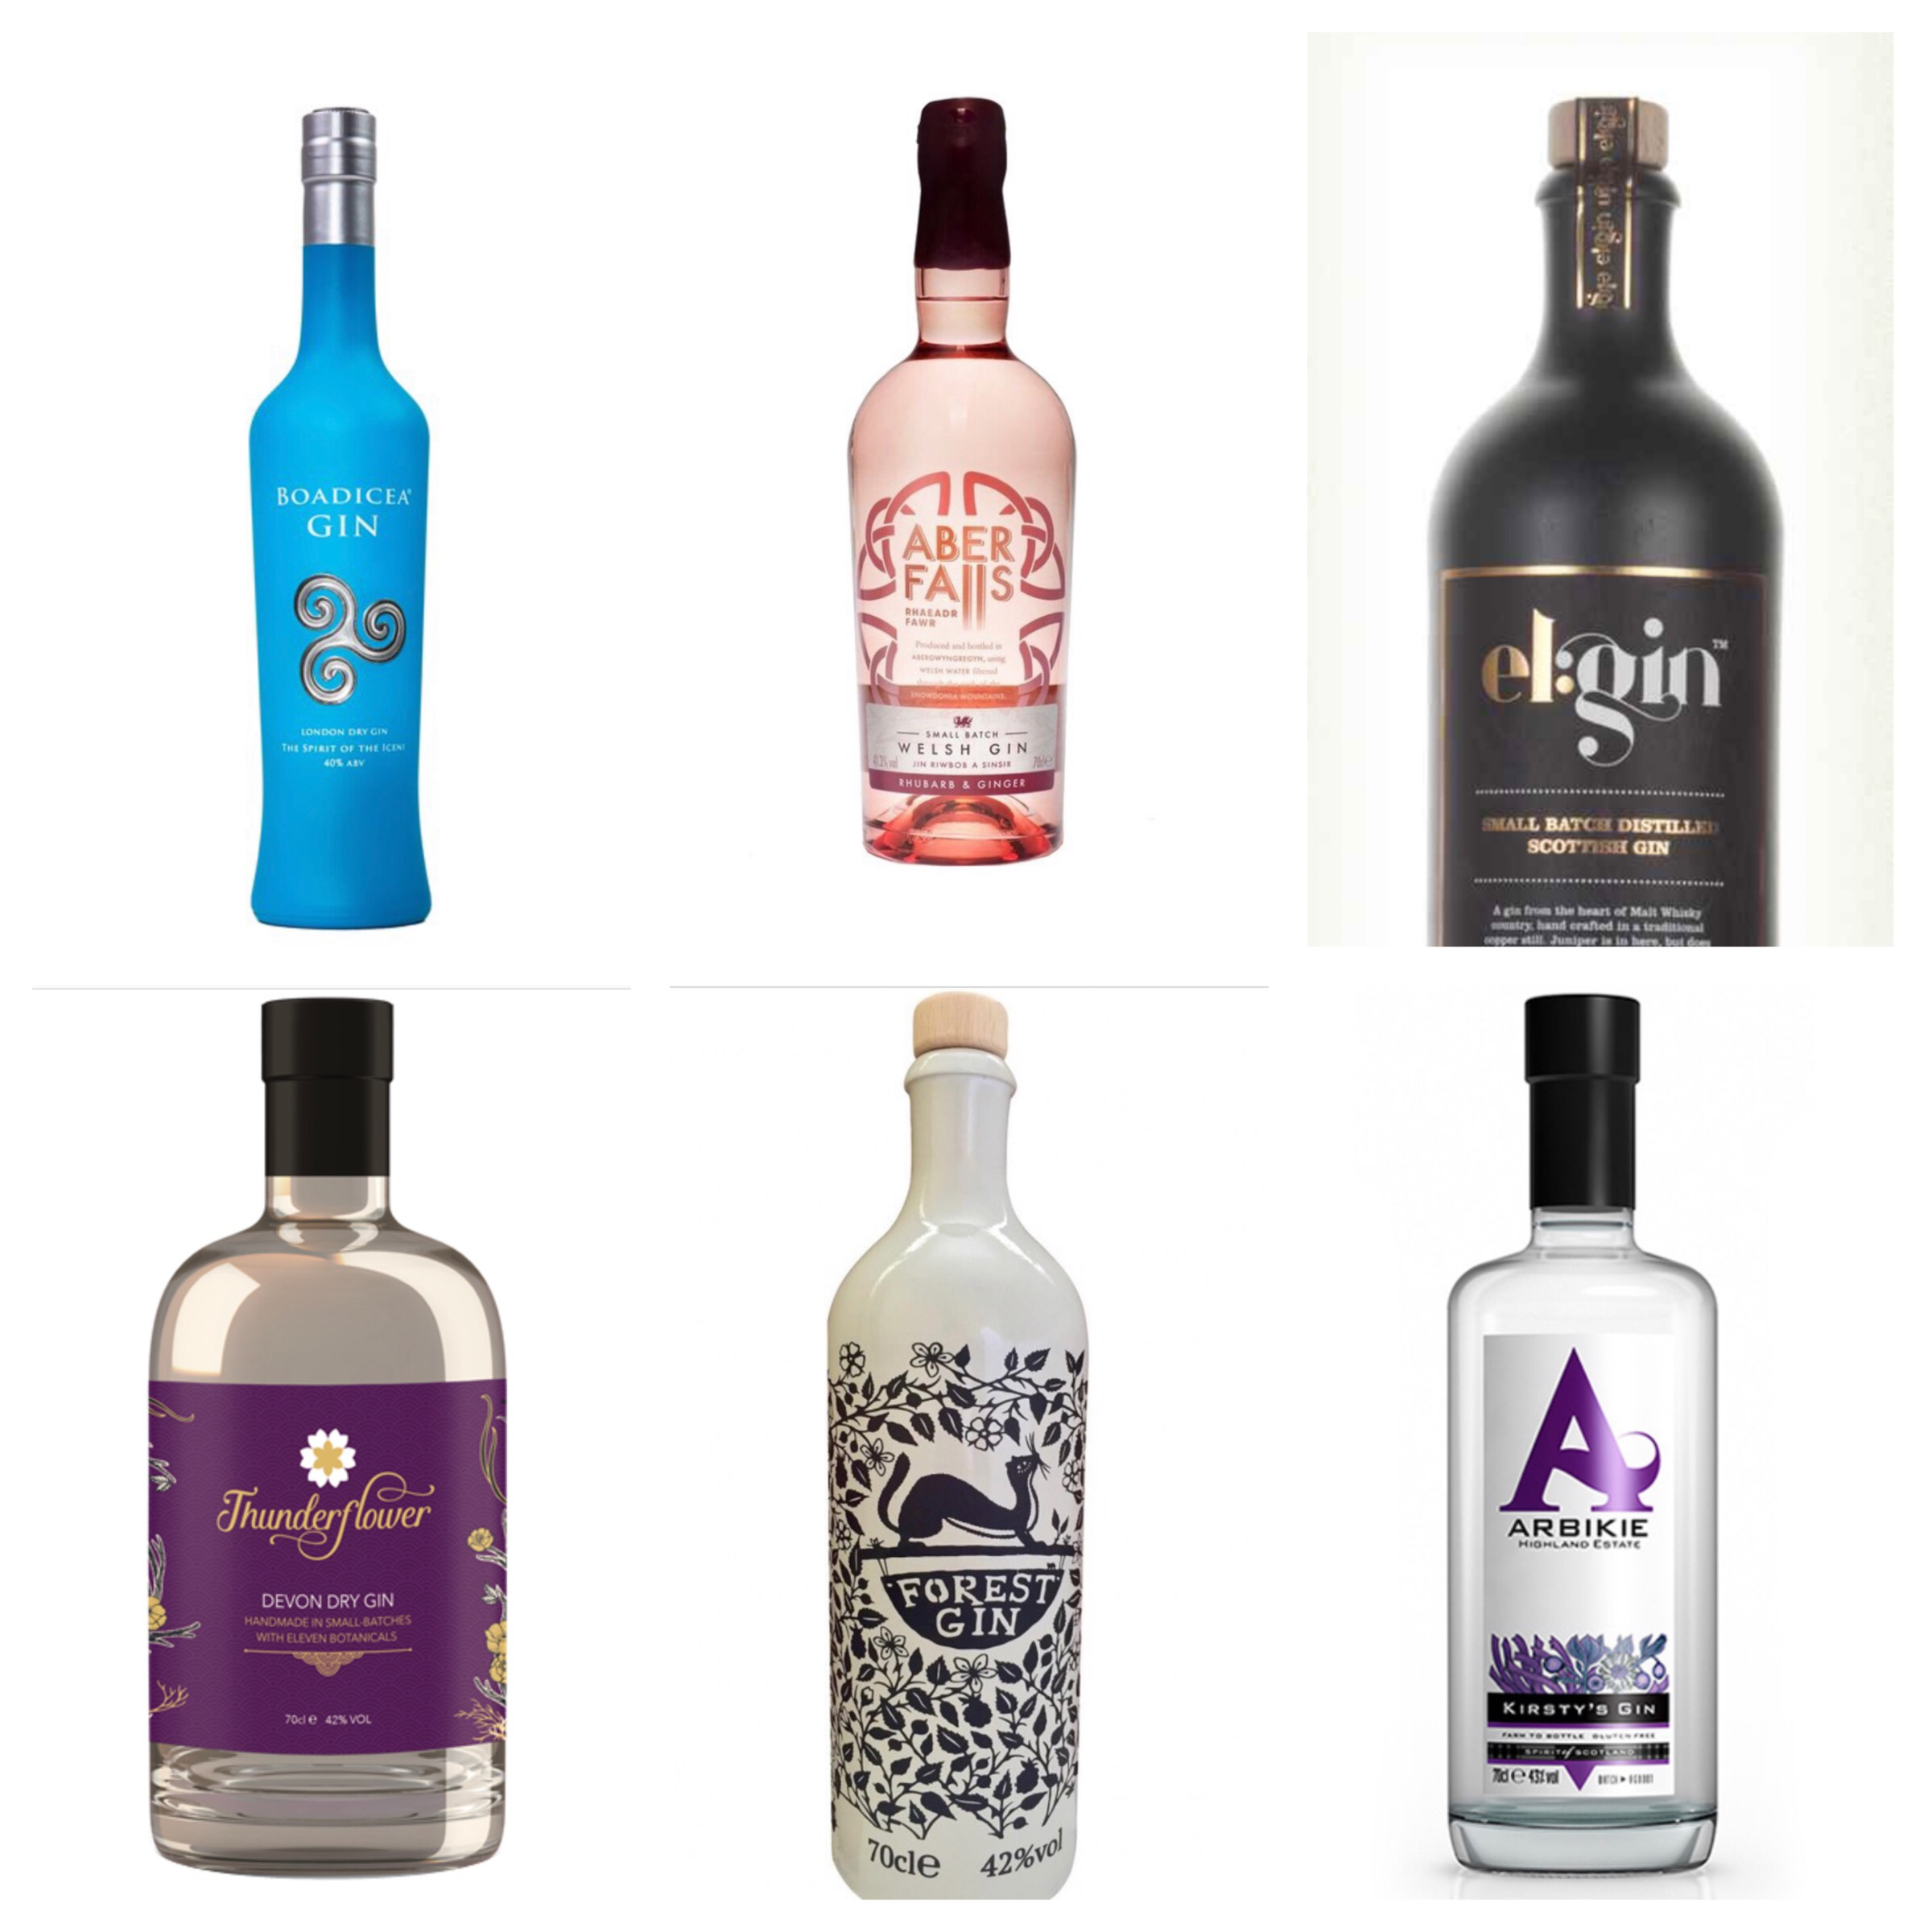 12 Gifts of Christmas Pt 11 – The Gin Lovers Gift Ideas – 6 Must Try Gins